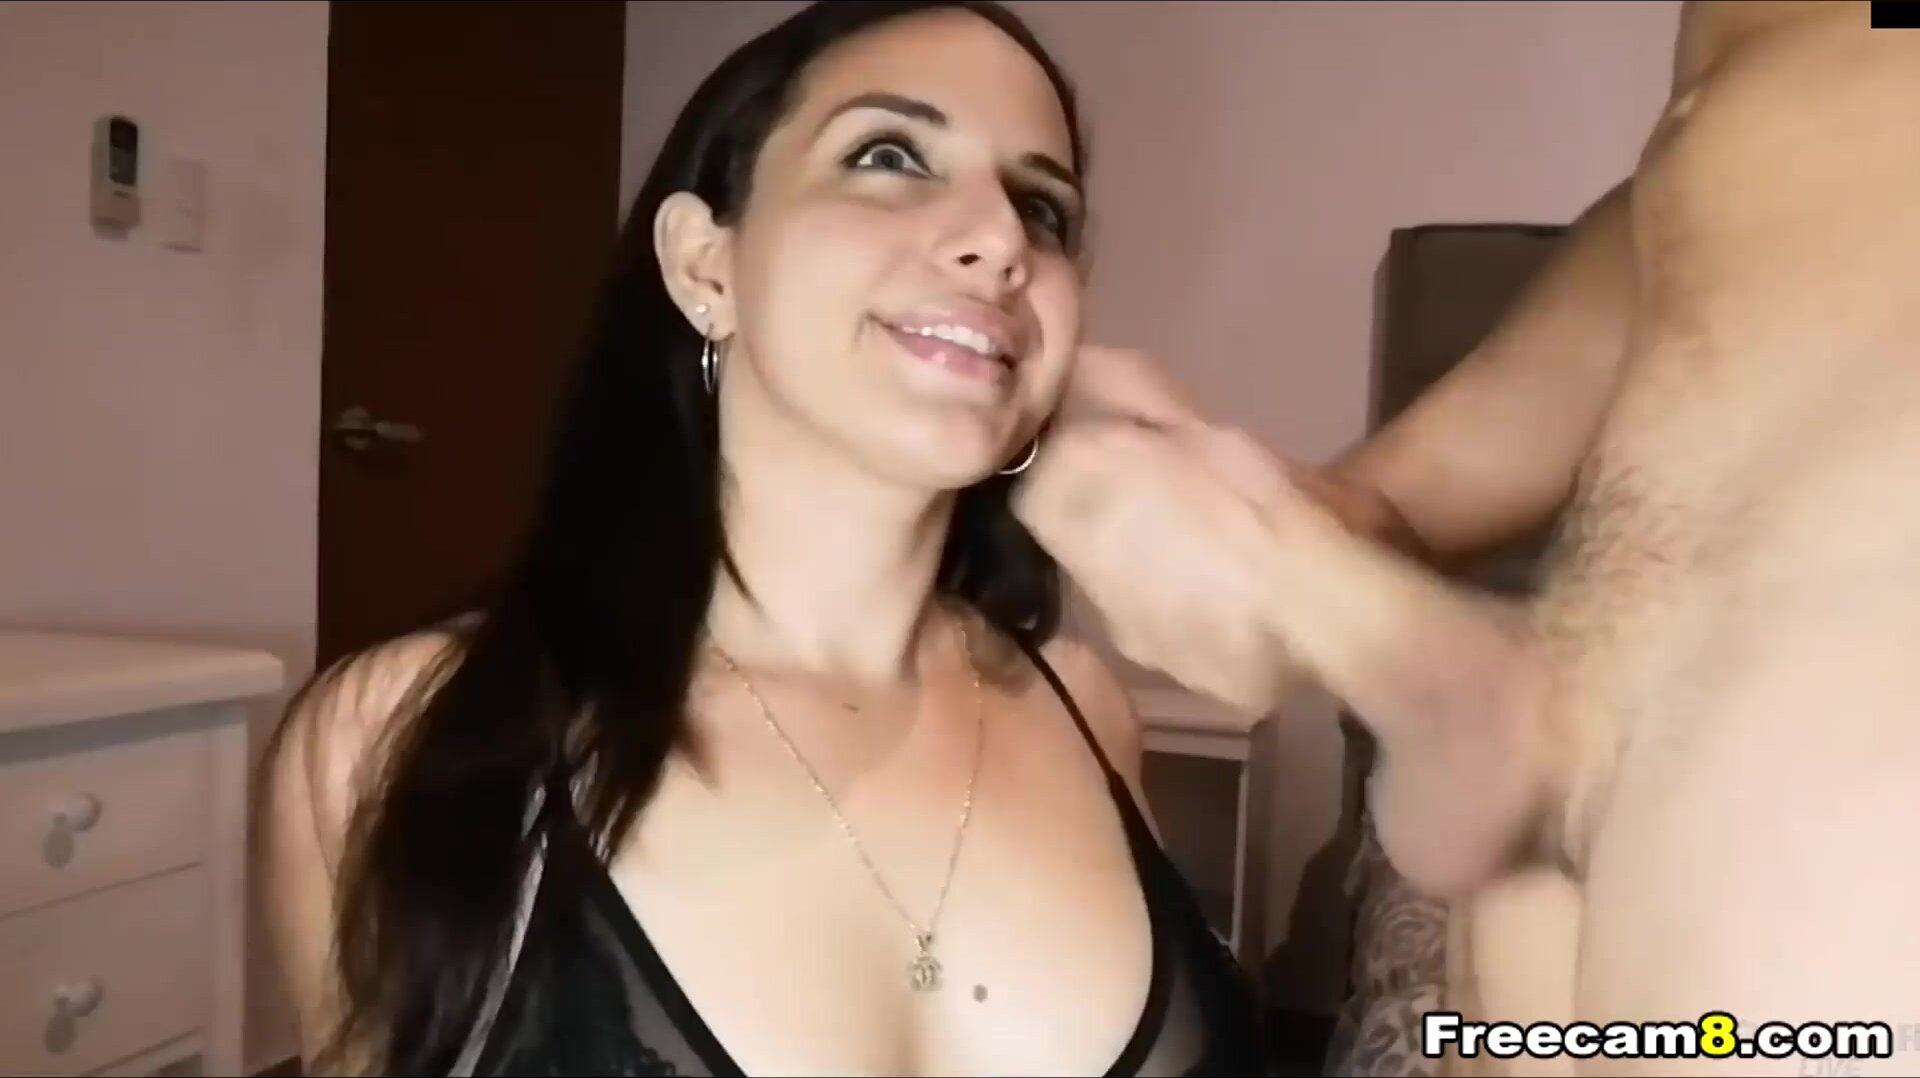 Pretty Brunette Gives a Handjob and BJ 3